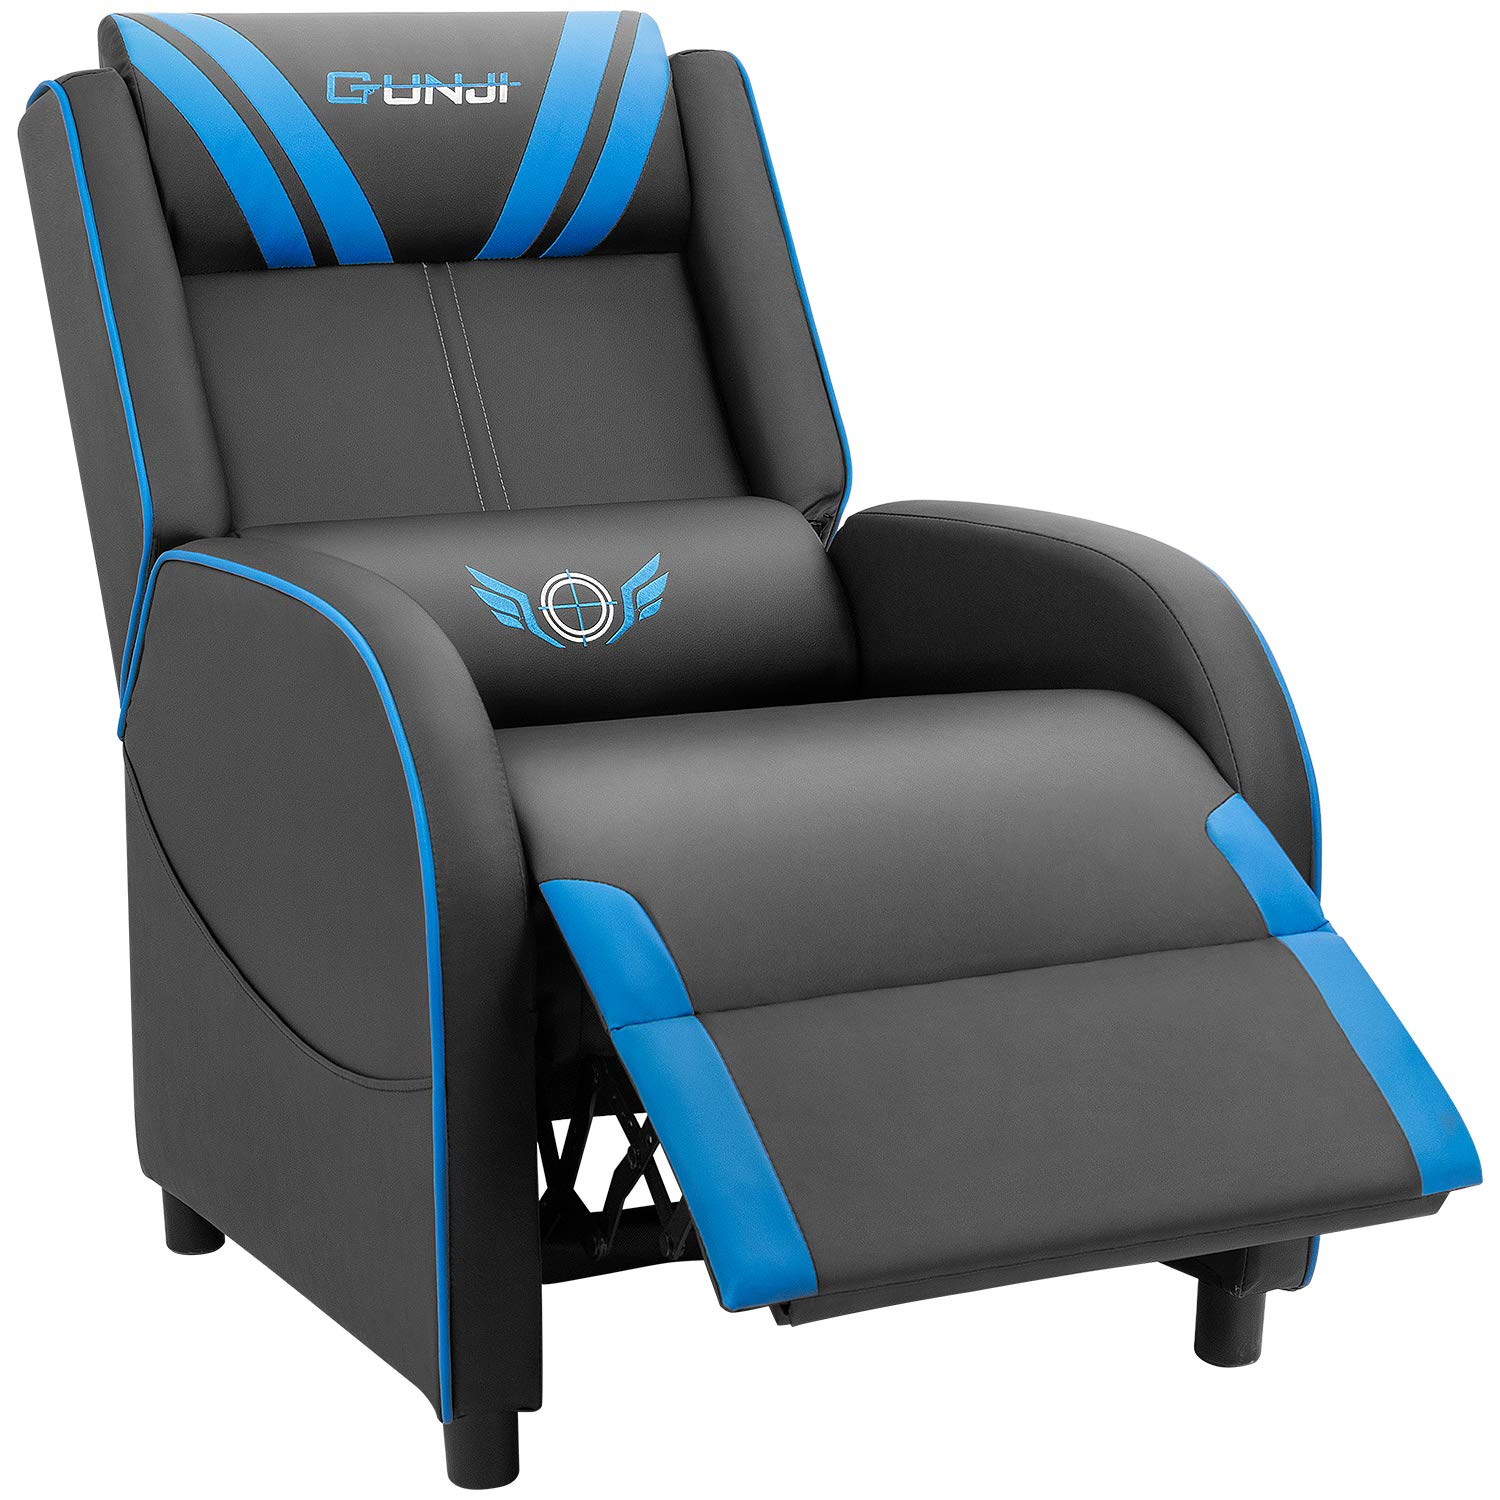 JUMMICO Gaming Recliner Chair PU Leather Single Recliner Sofa Adjustable Modern Living Room Recliners Home Theater Recliner Seat Blue